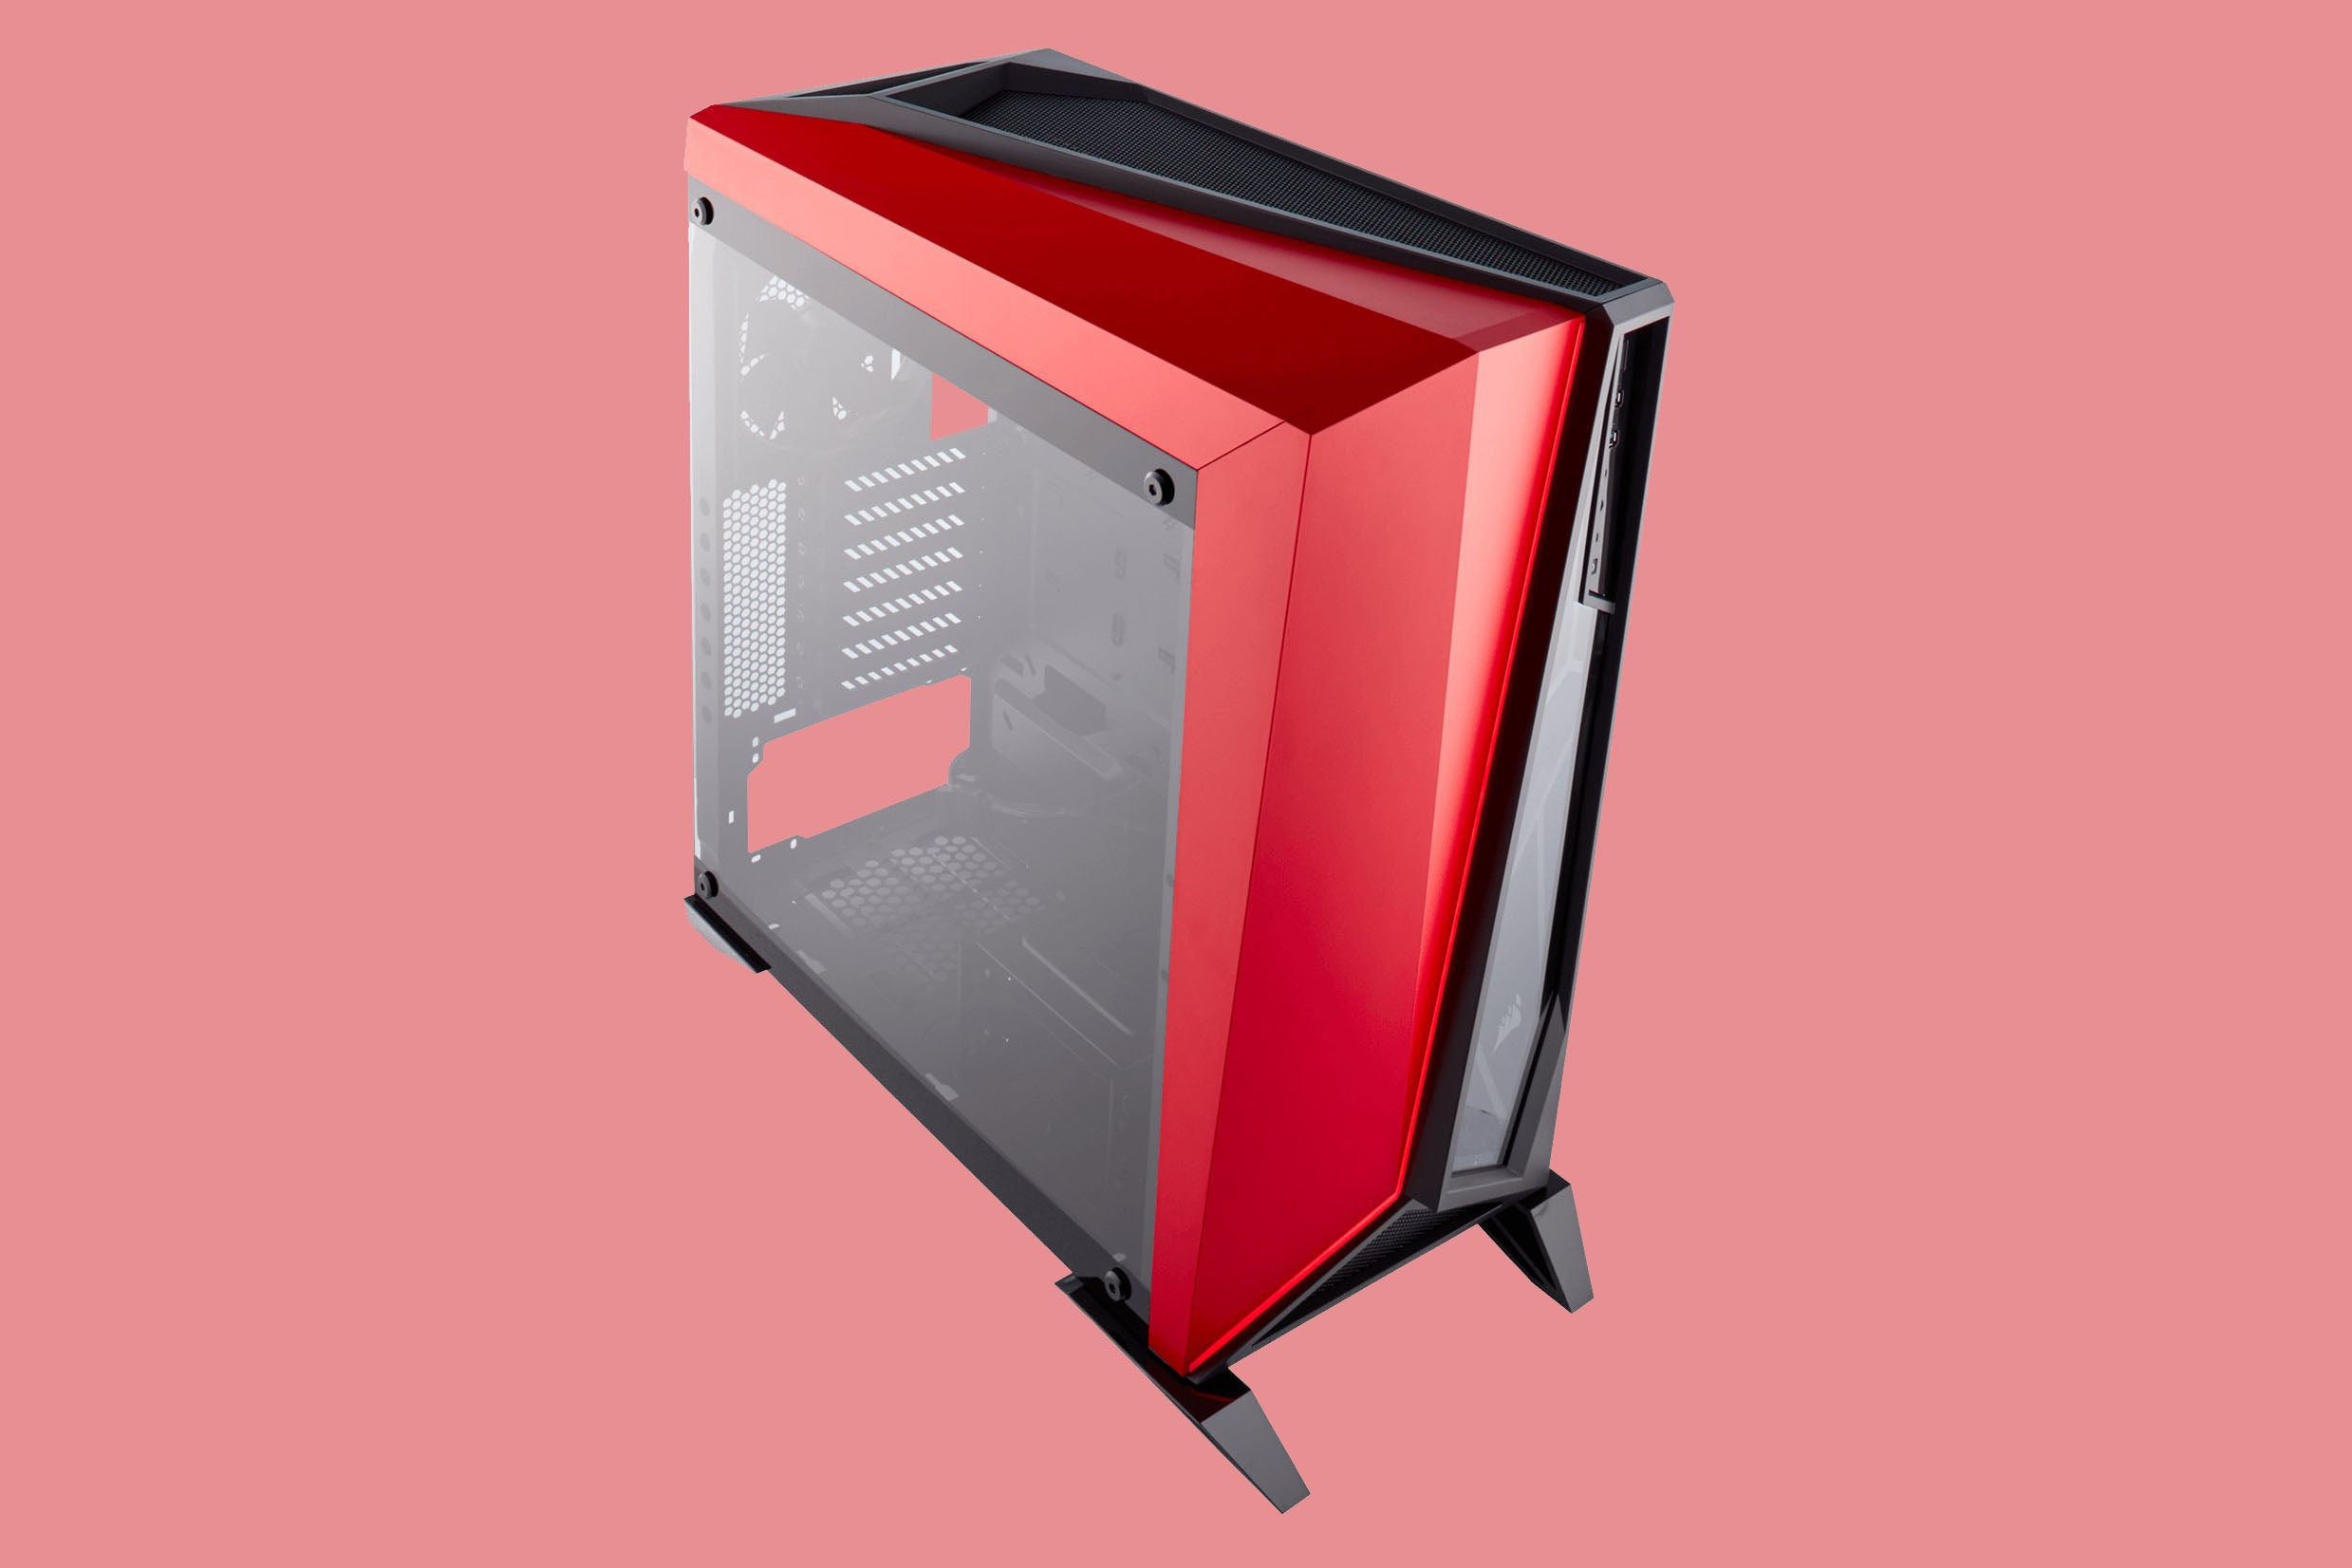 Best PC Cases 2019: ATX and mini-ITX cases for all budgets